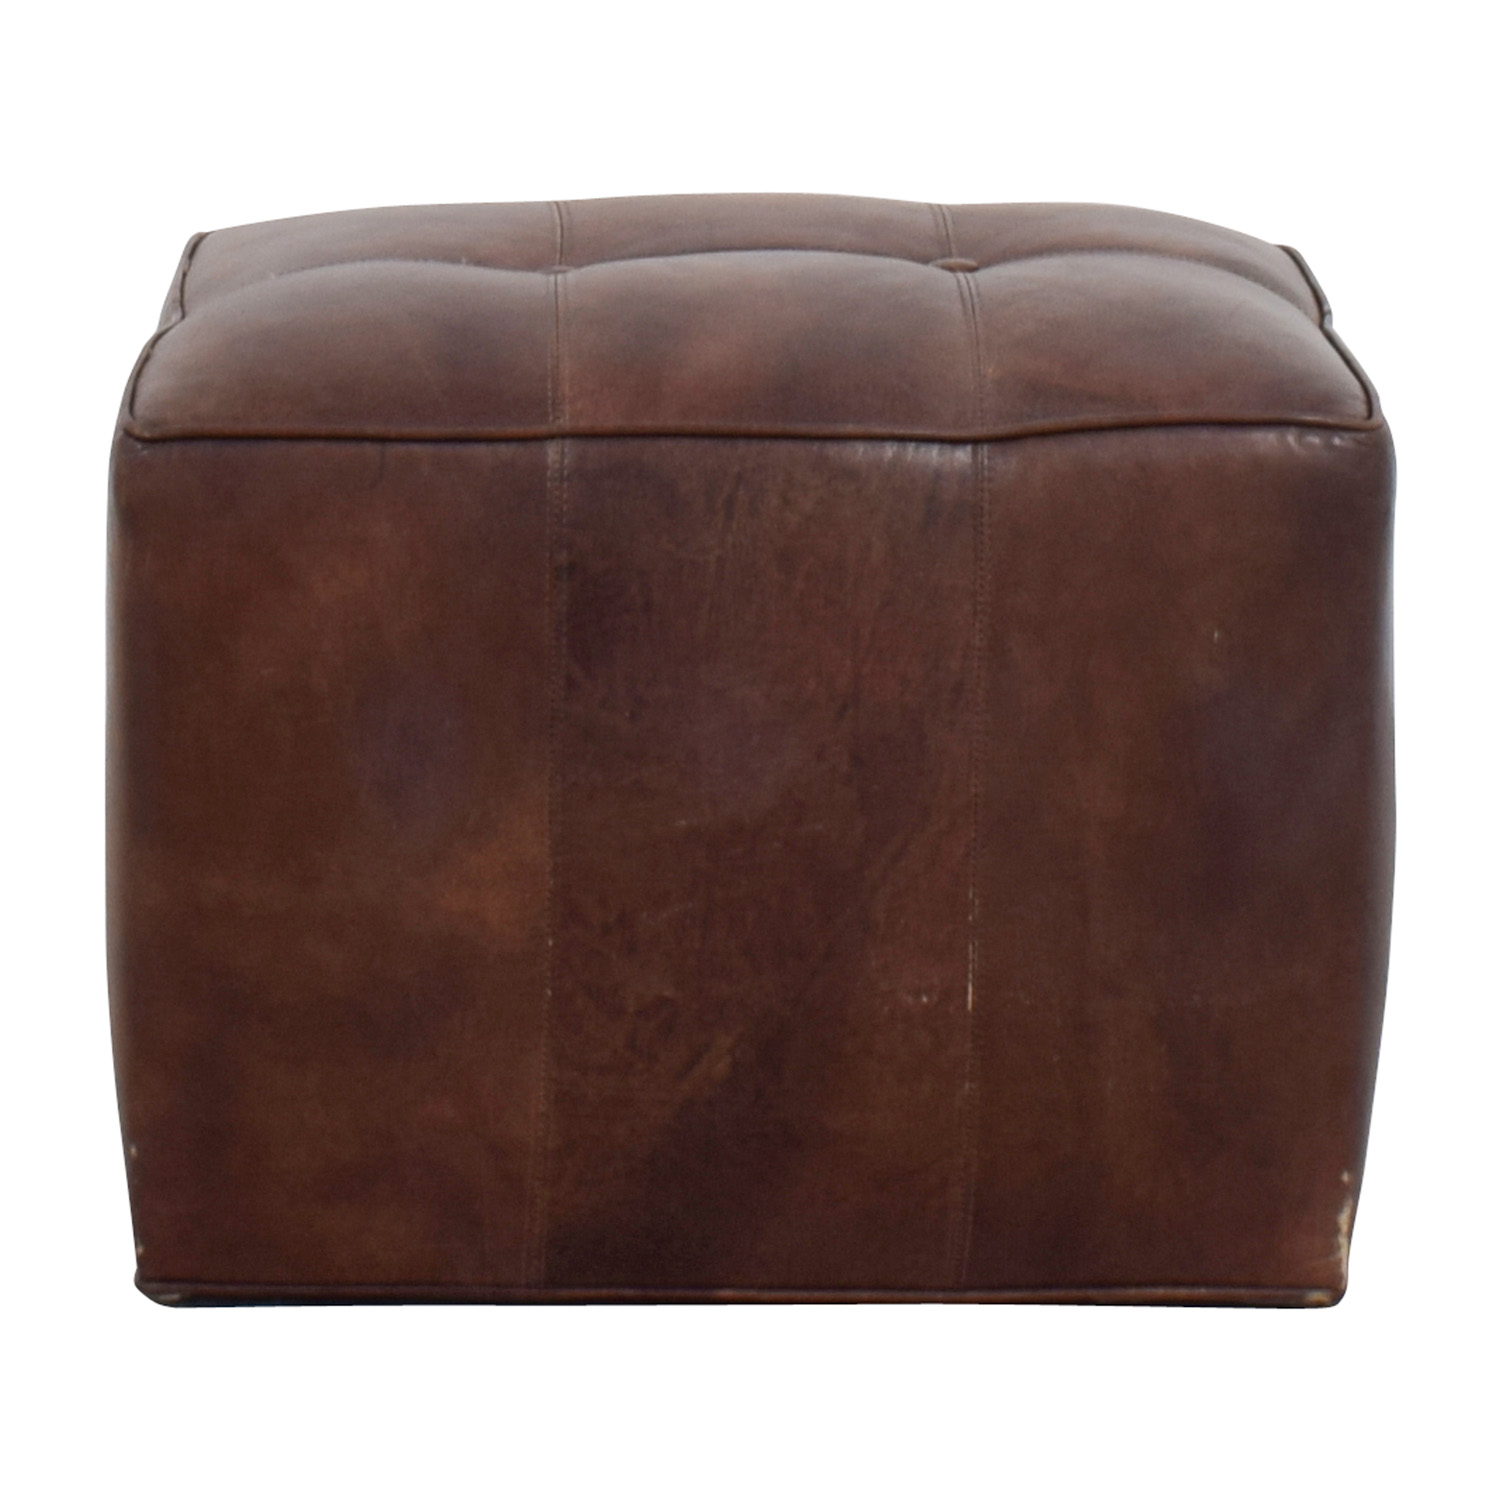 Room & Board Brown Leather Tufted Cube / Ottomans